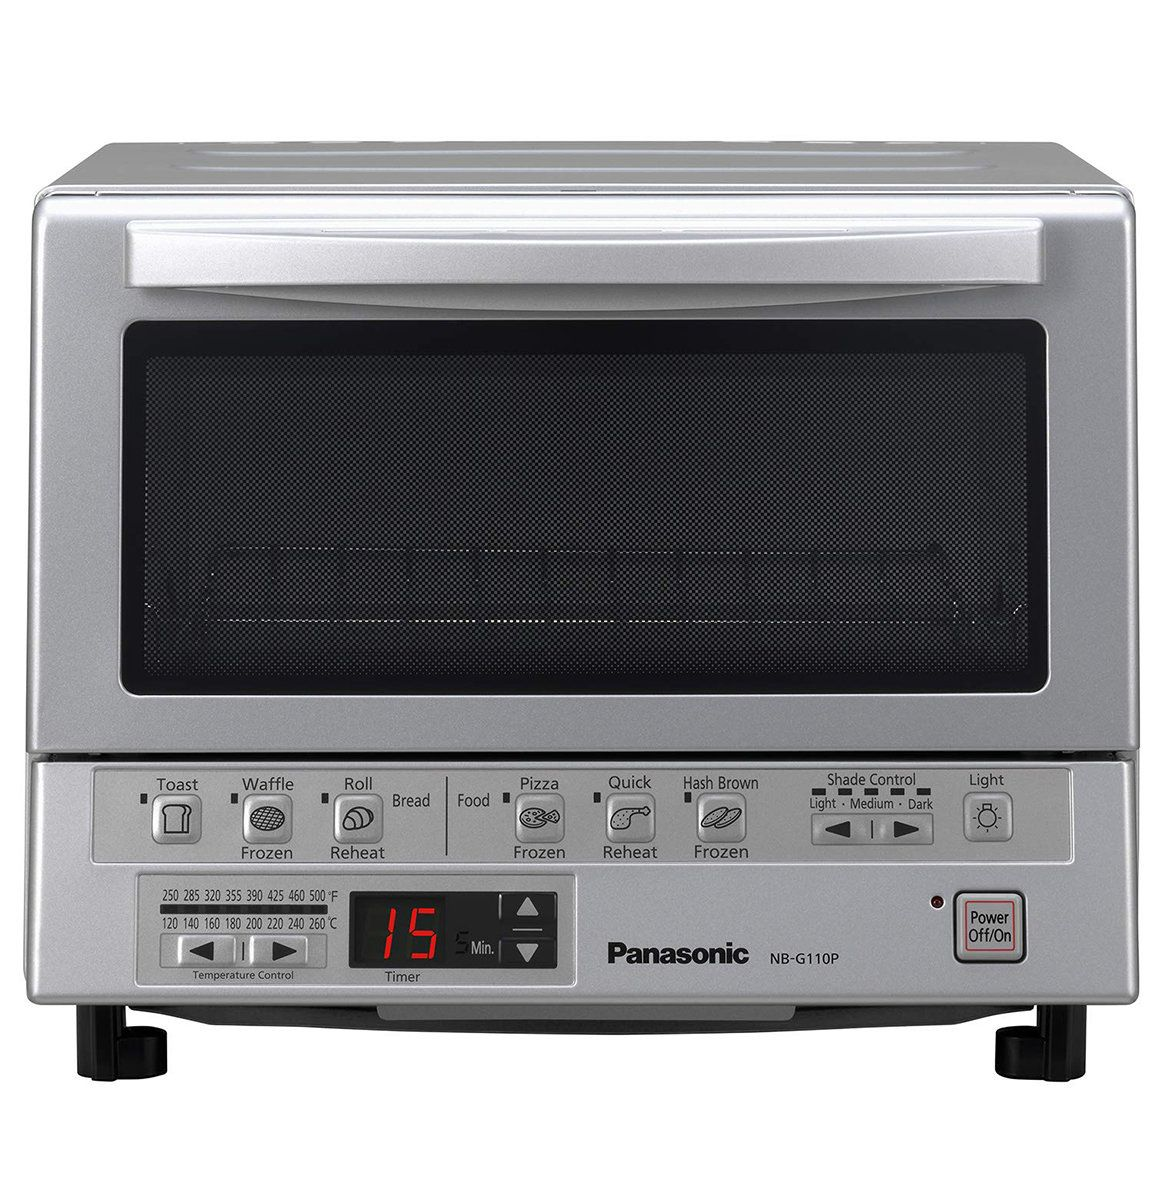 The 10 Best Toaster Ovens for All Your Cooking Needs, According to